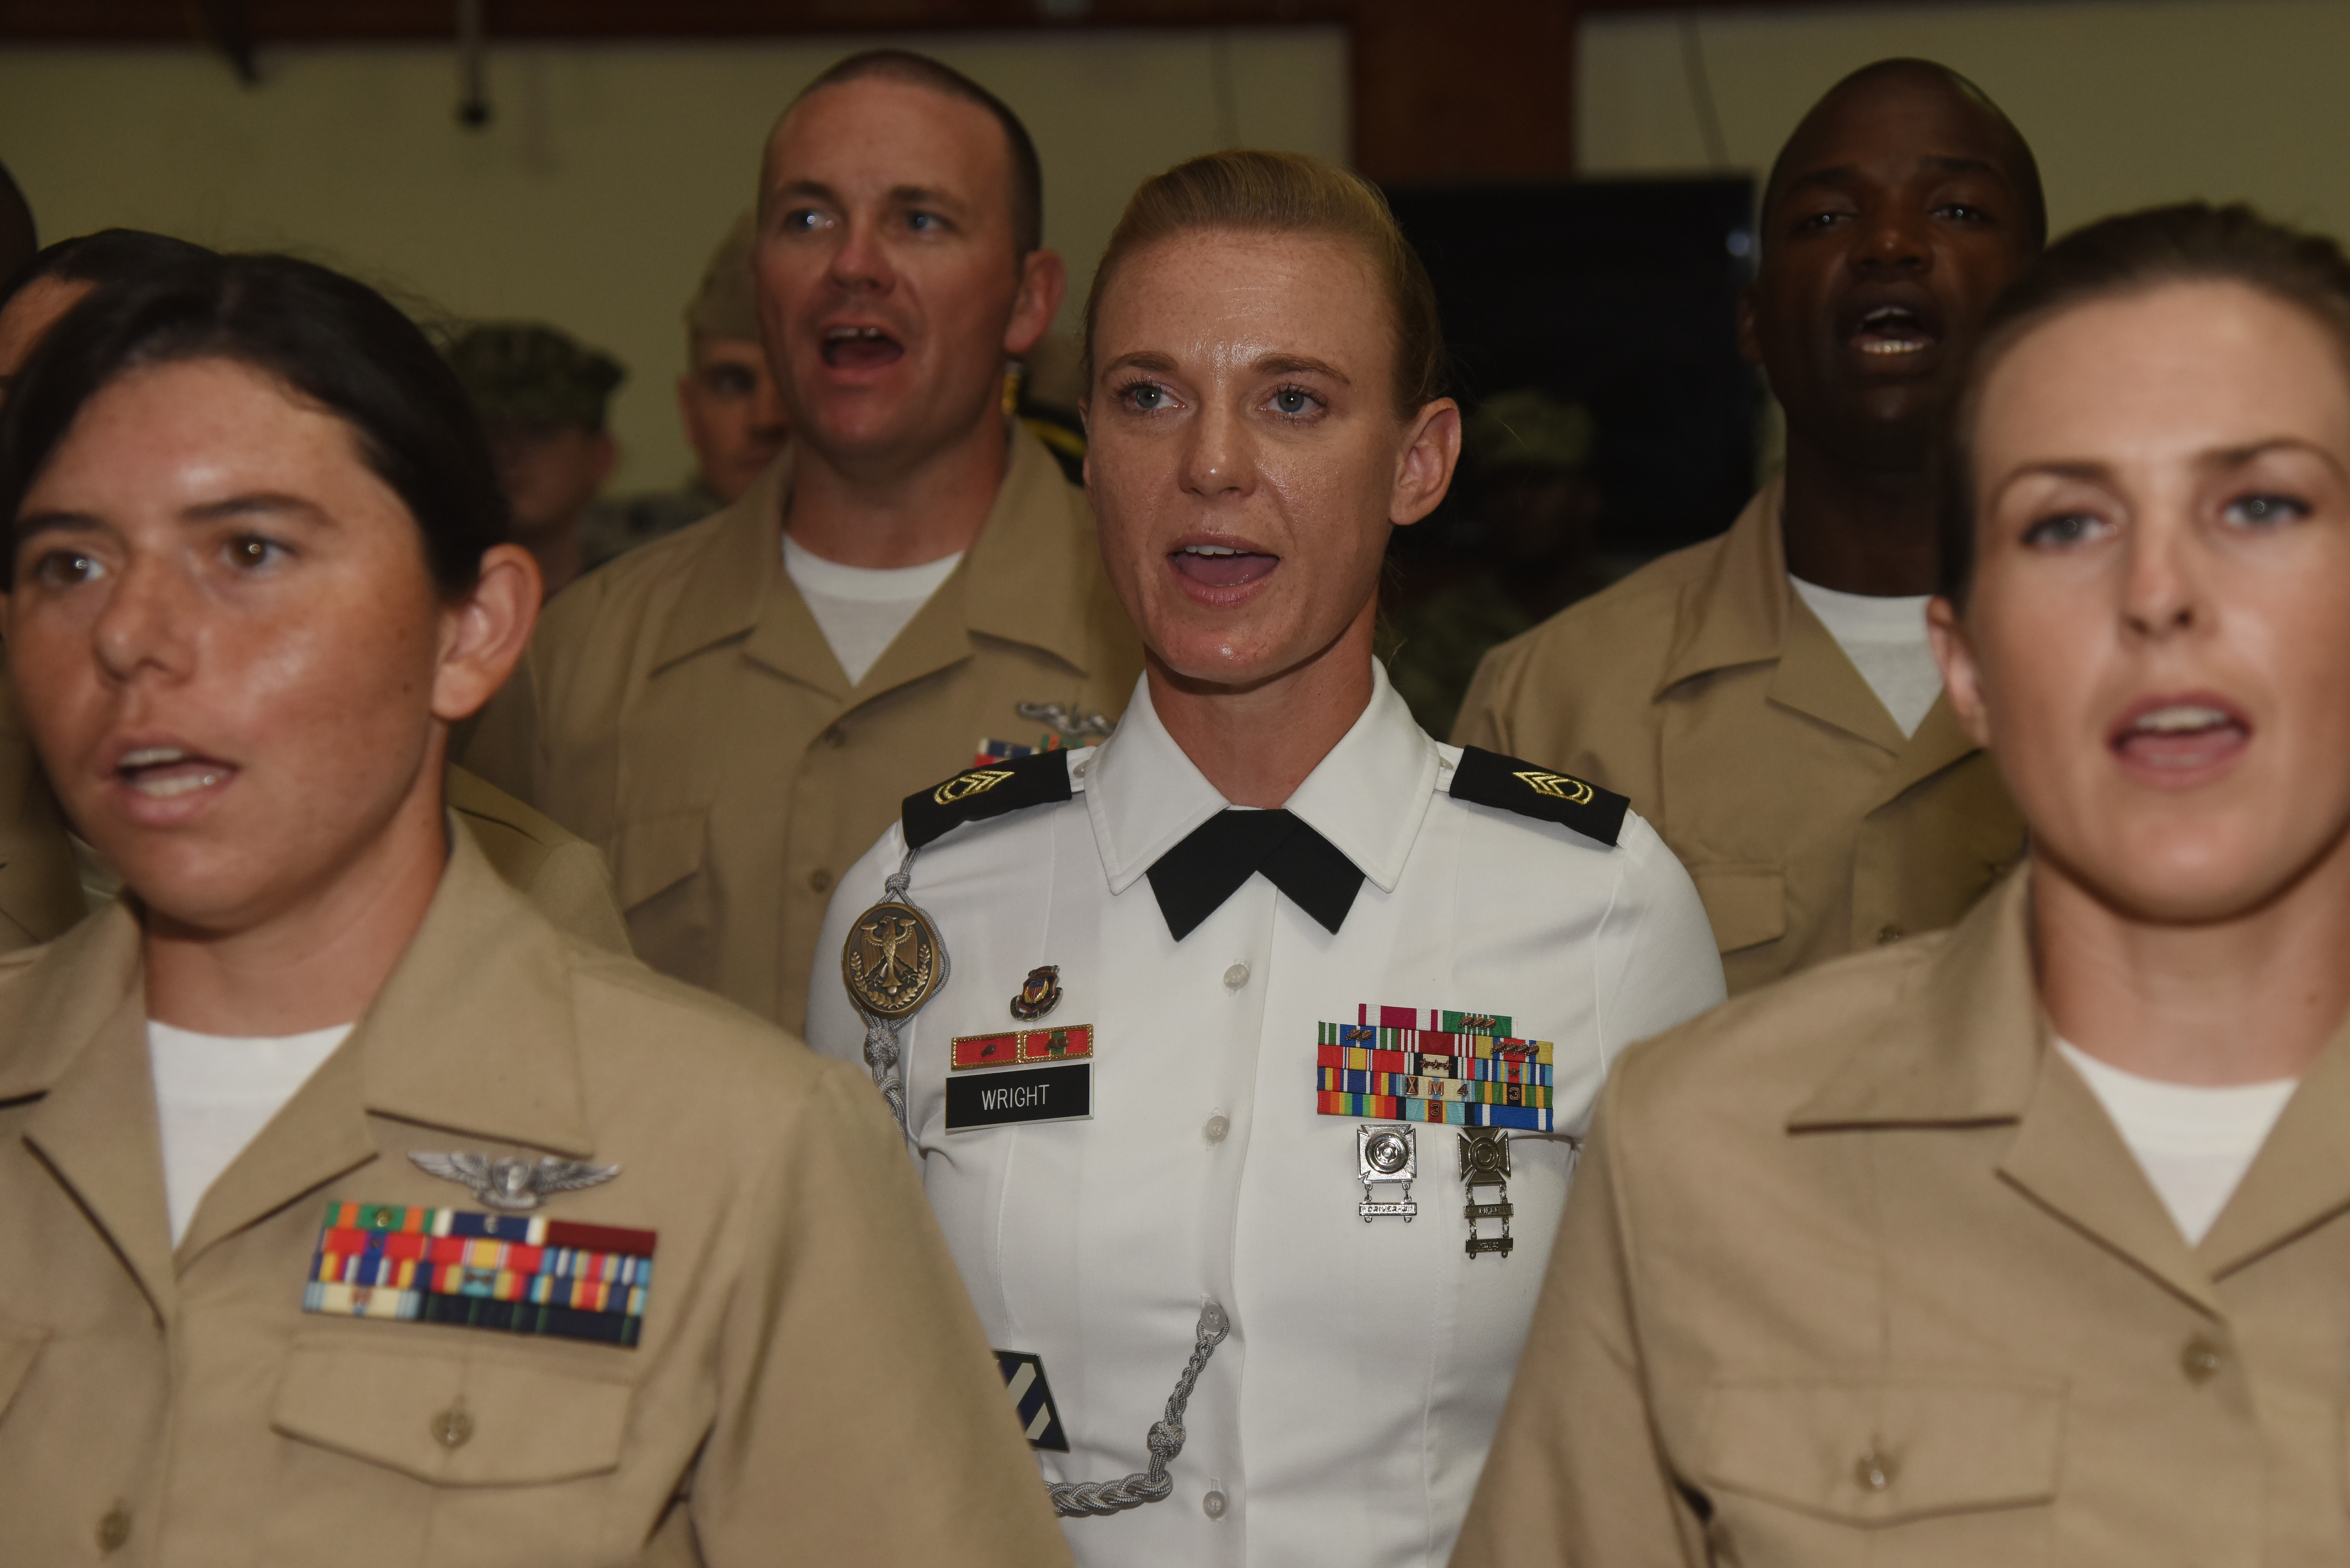 U.S. Army Sgt. 1st Class Heather Wright, Army Command Element NCO in charge, sings the Navy song, Anchors Aweigh, during a pinning ceremony at Camp Lemonnier, Djibouti, Sept. 16, 2015. Wright was the only Army soldier to attend the Navy Chief Petty Officer 365 Phase Two at the camp, which teaches leadership skills to senior noncommissioned officers.  (U.S. Air Force photo by Staff Sgt. Maria Bowman)